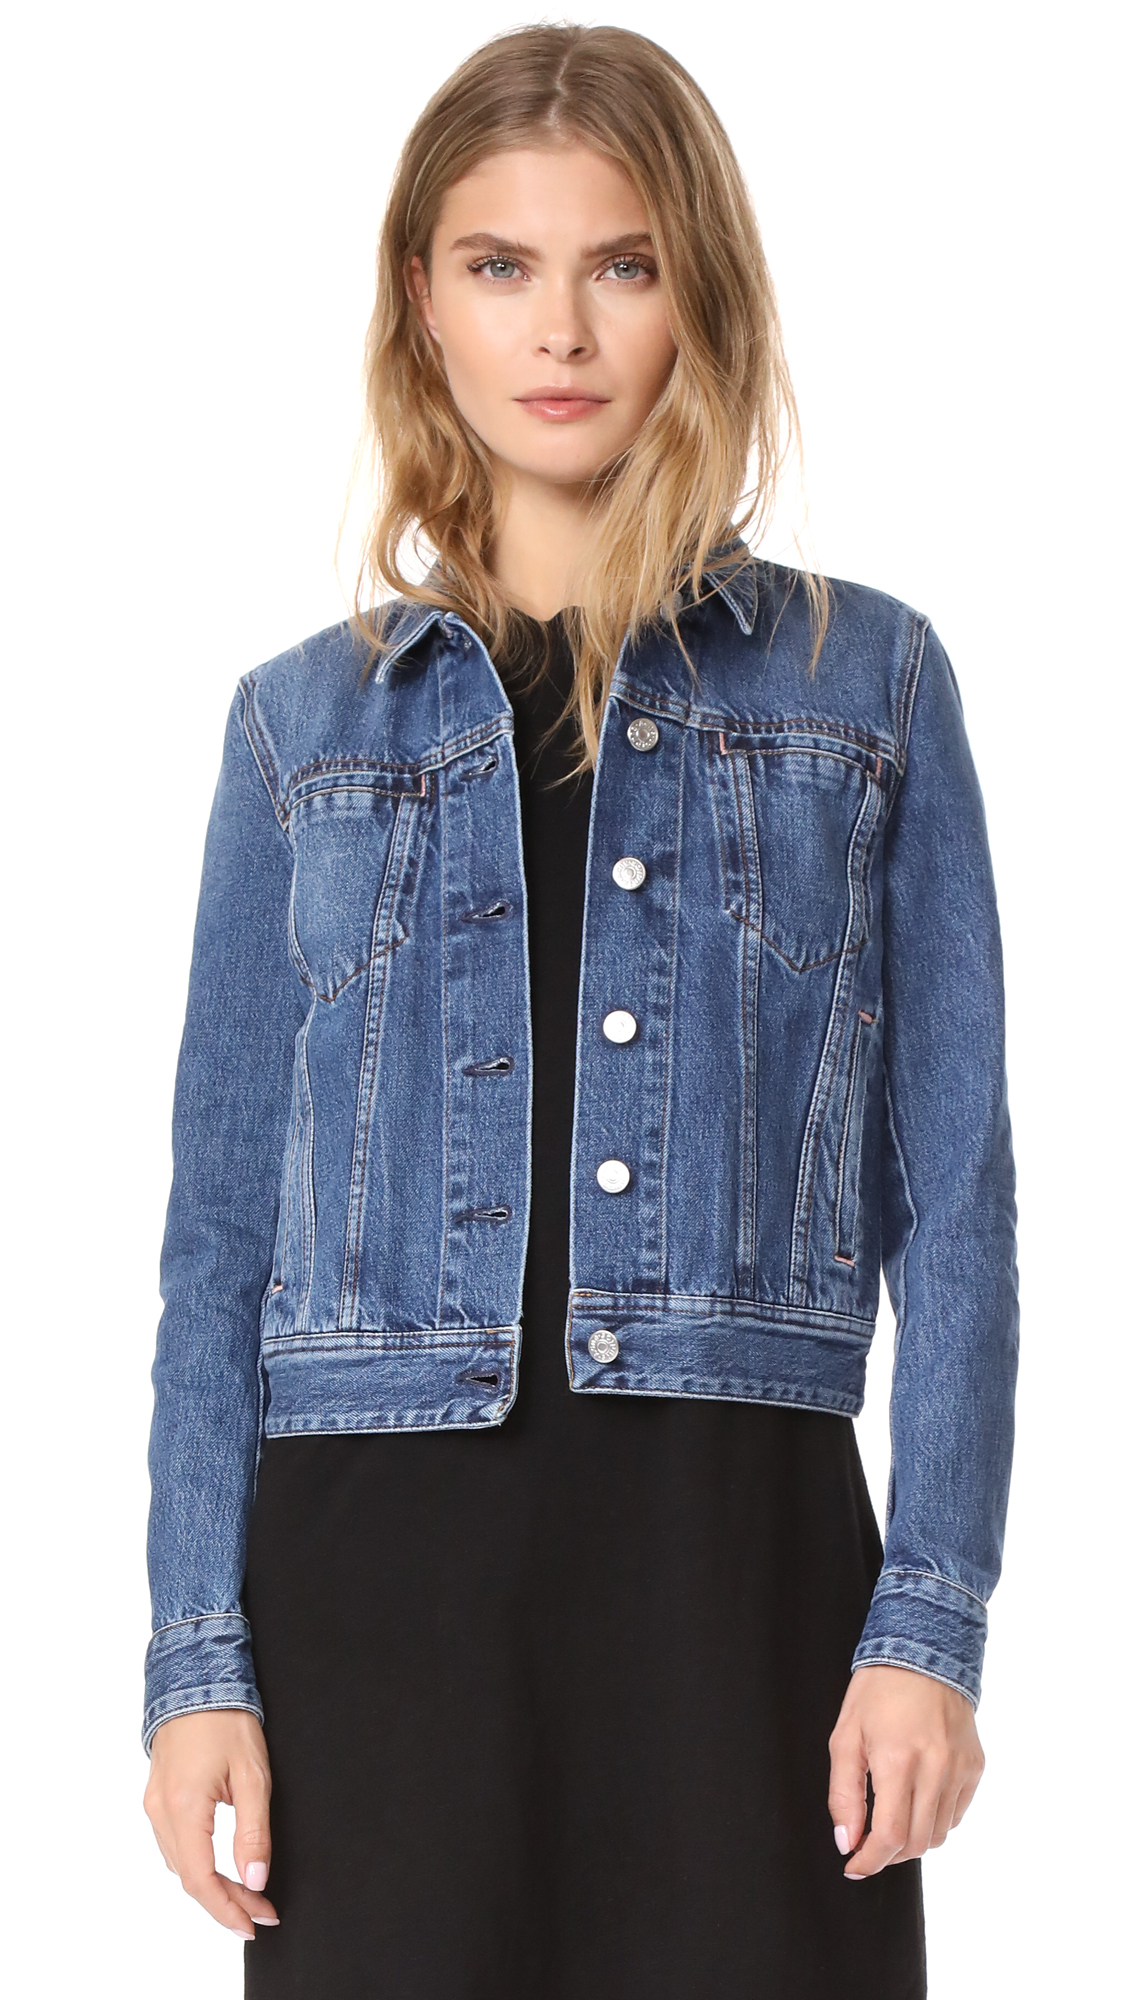 Acne Studios Cliff Jean Jacket - Mid Blue